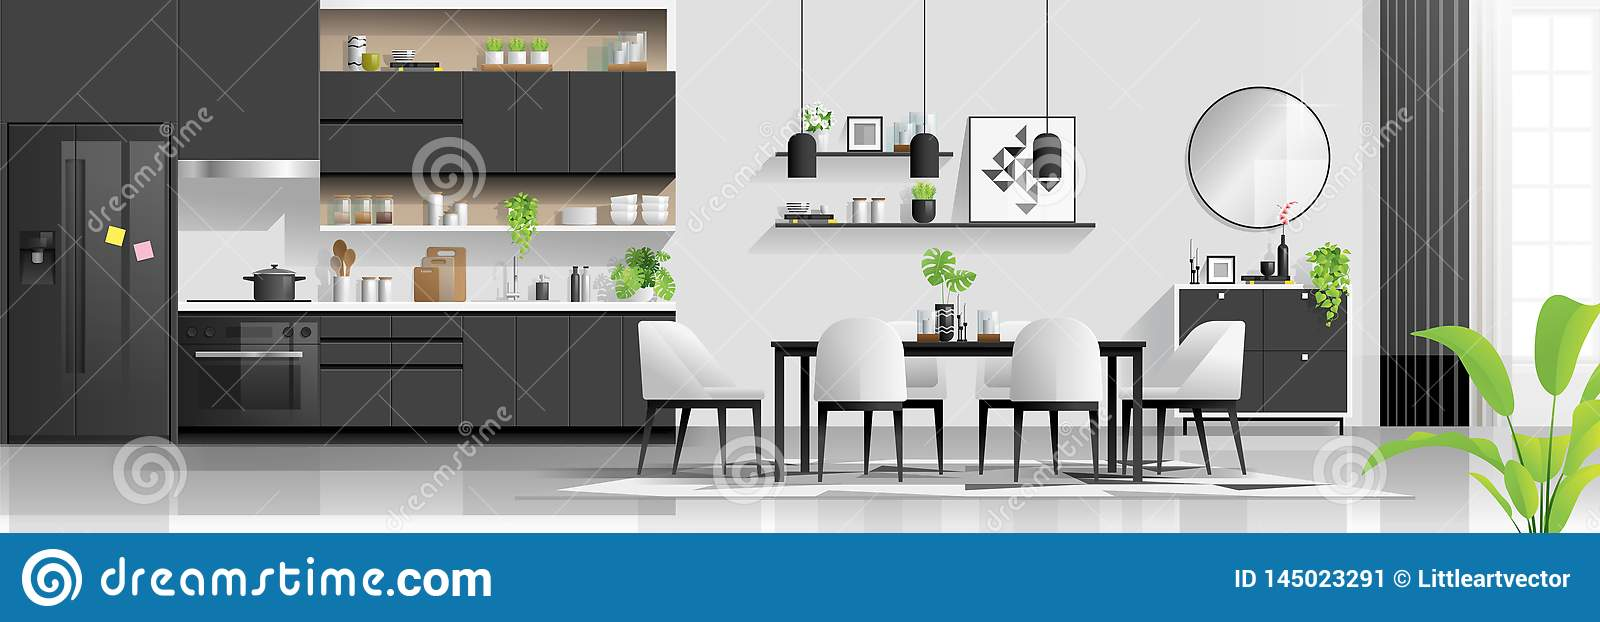 Modern Black And White House Interior Background With Kitchen And Dining Room Combination Stock Vector Illustration Of Display Cupboard 145023291